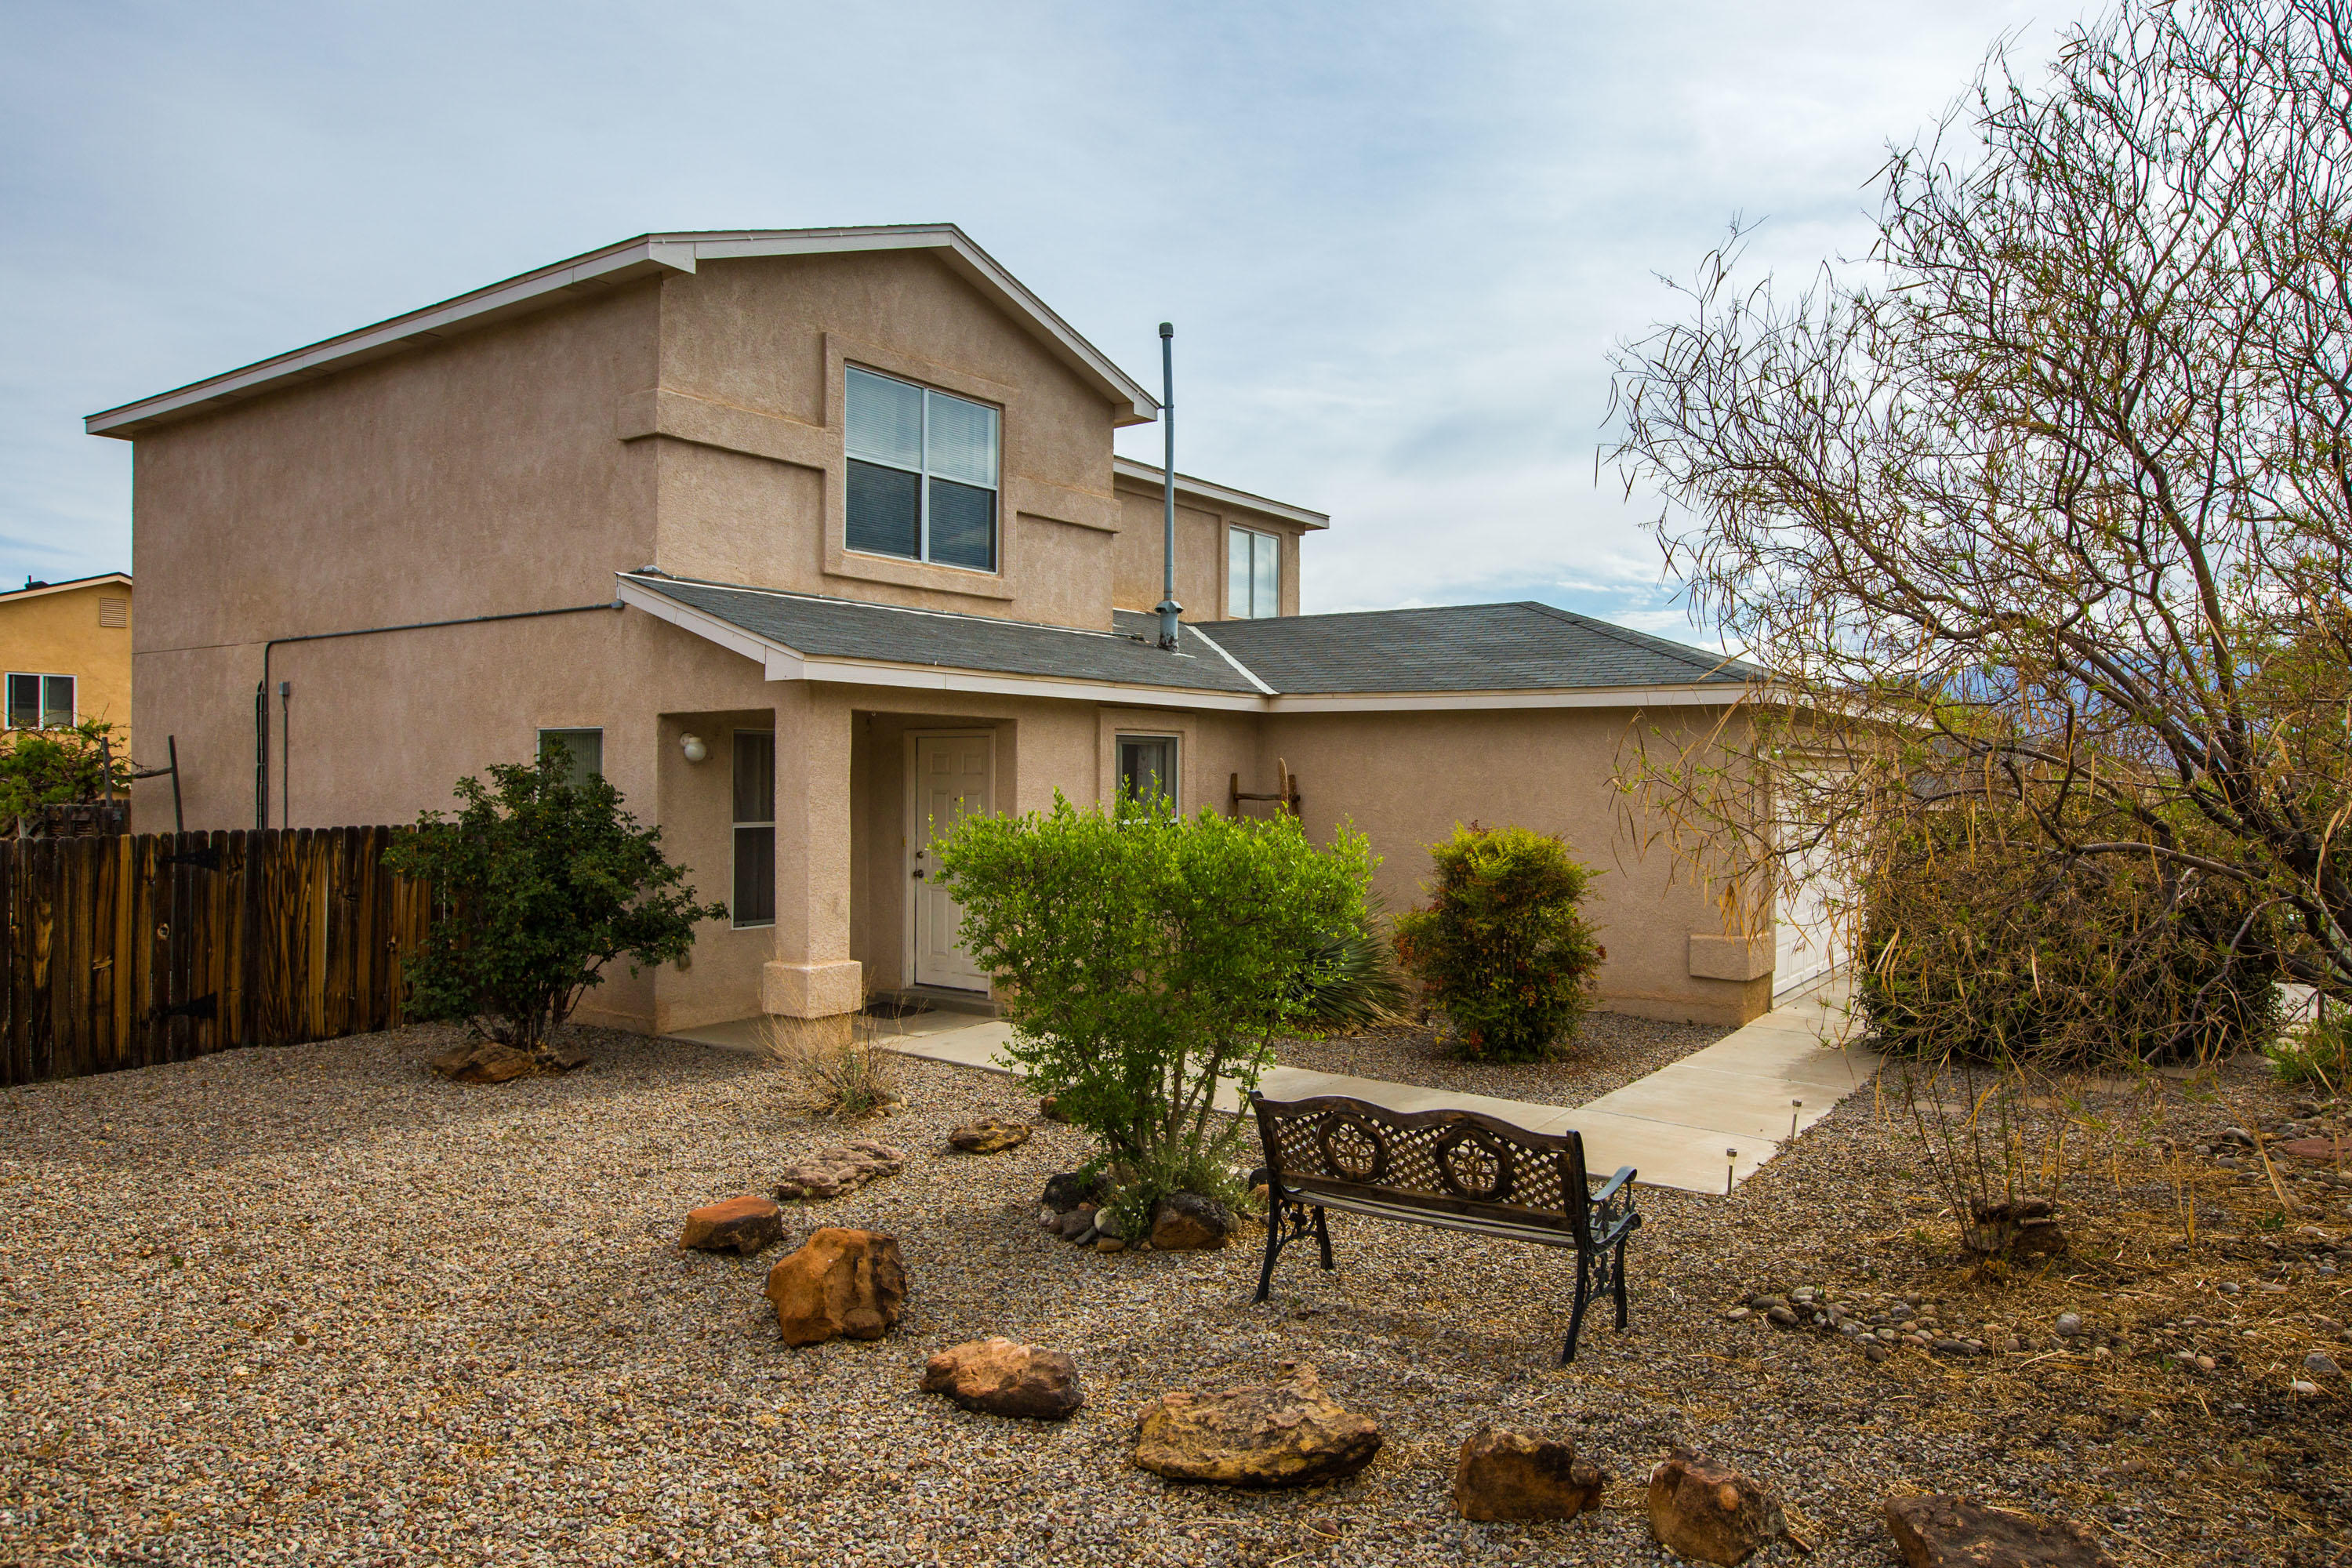 A wonderful home inside and outside! Equipped with a two car garage, refrigerator, dishwasher, gas stove, washer, dryer. The spacious upstairs loft allows for additional living space/office/playroom. Conveniently located near restaurants, shopping and grocery stores. The well maintained backyard offers a covered patio and space for entertainment. Don't miss out on this great property! HOA provides you with access to community pool and parks in subdivision.